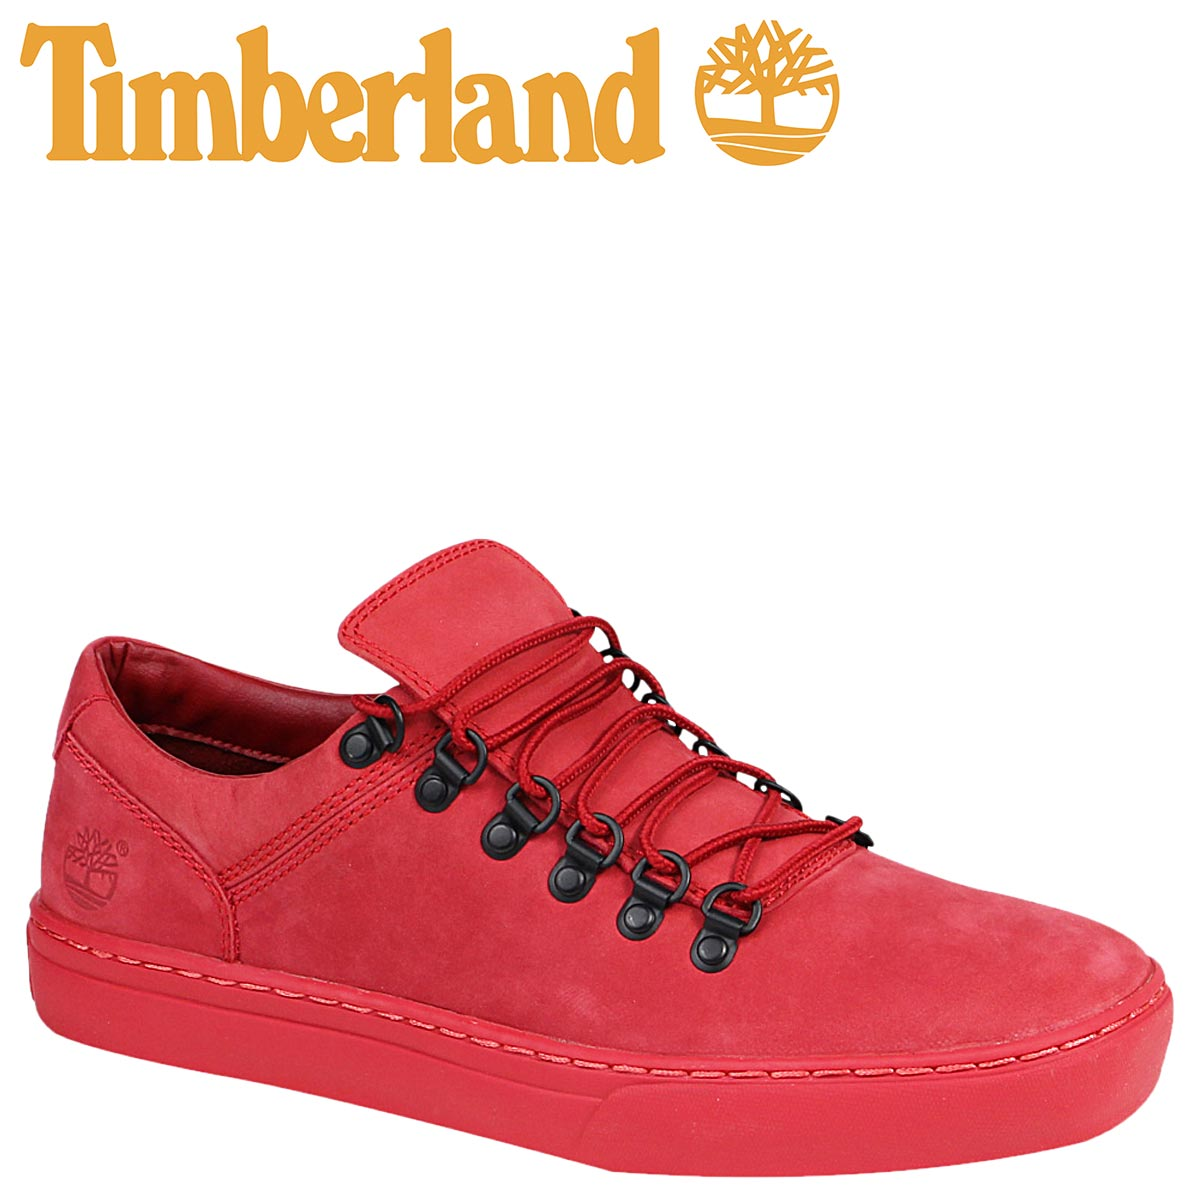 Timberland Timberland chukka boots ADVENTURE 2.0 CUPSOLE CHUKKA A17ME W Wise red men